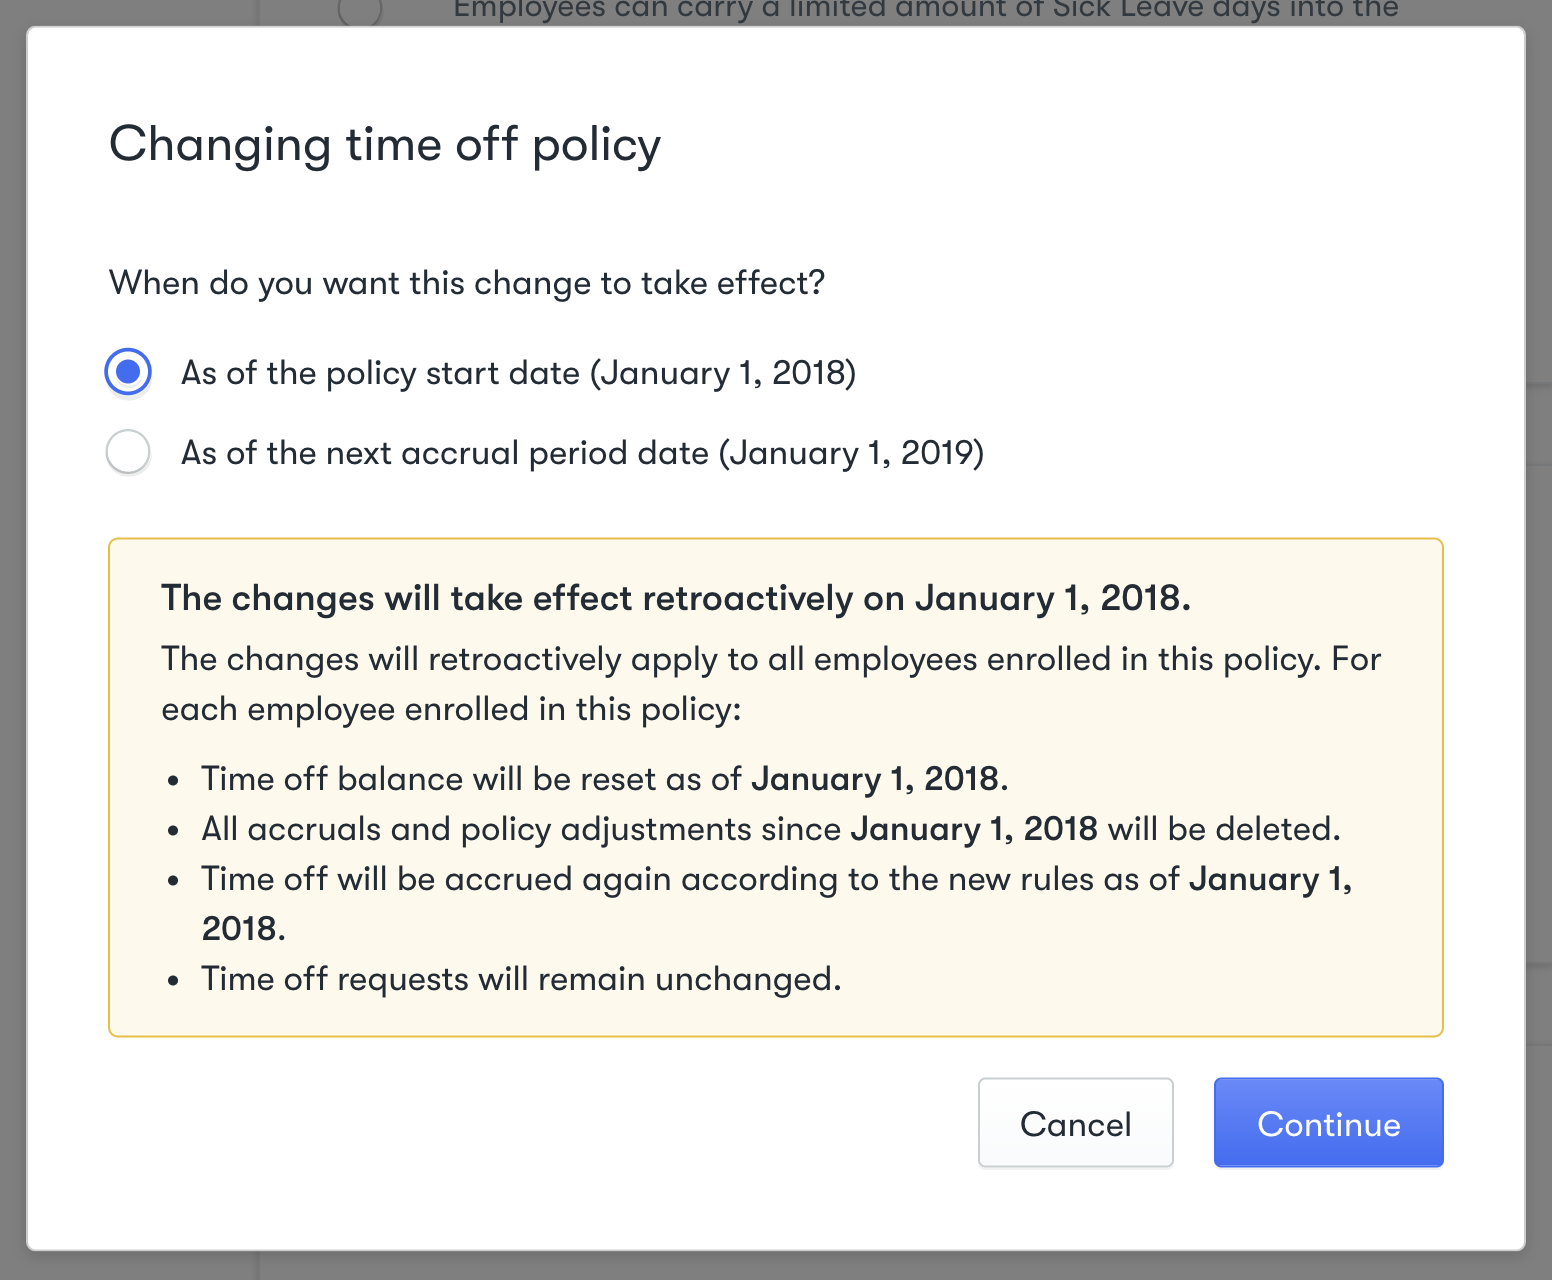 Changing time off policy menu displaying effective date options and warning message for retroactive changes.